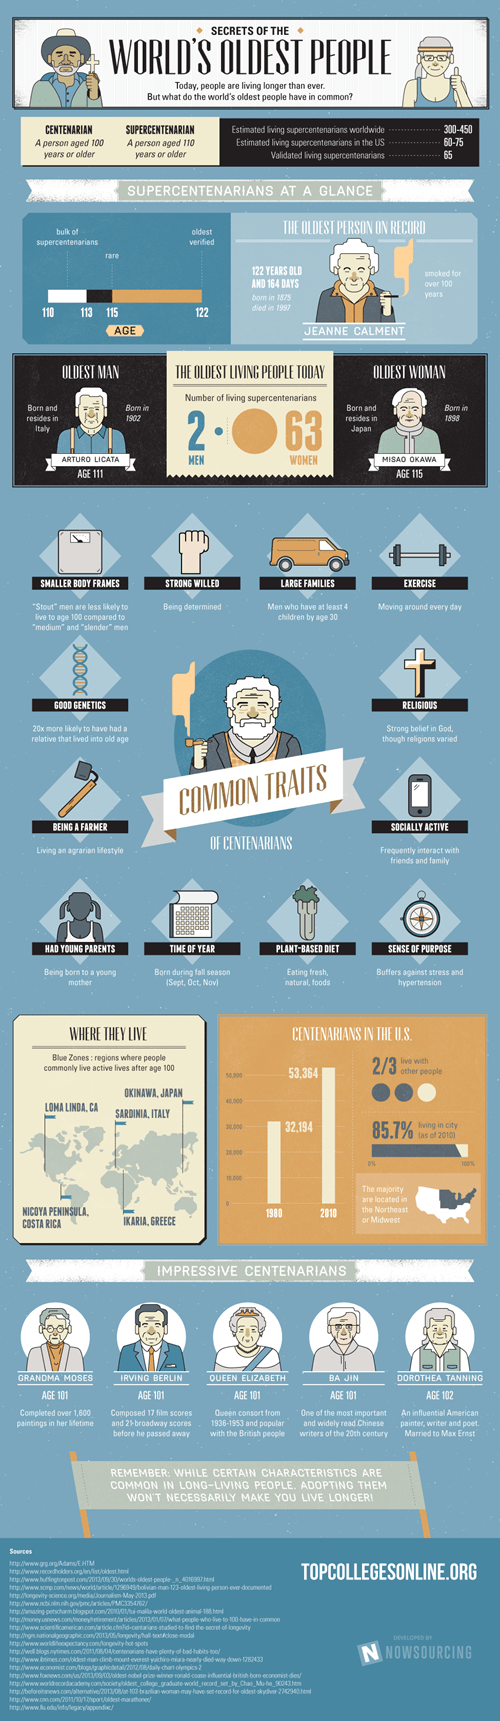 infographic funny old people science wtf - 7946057728